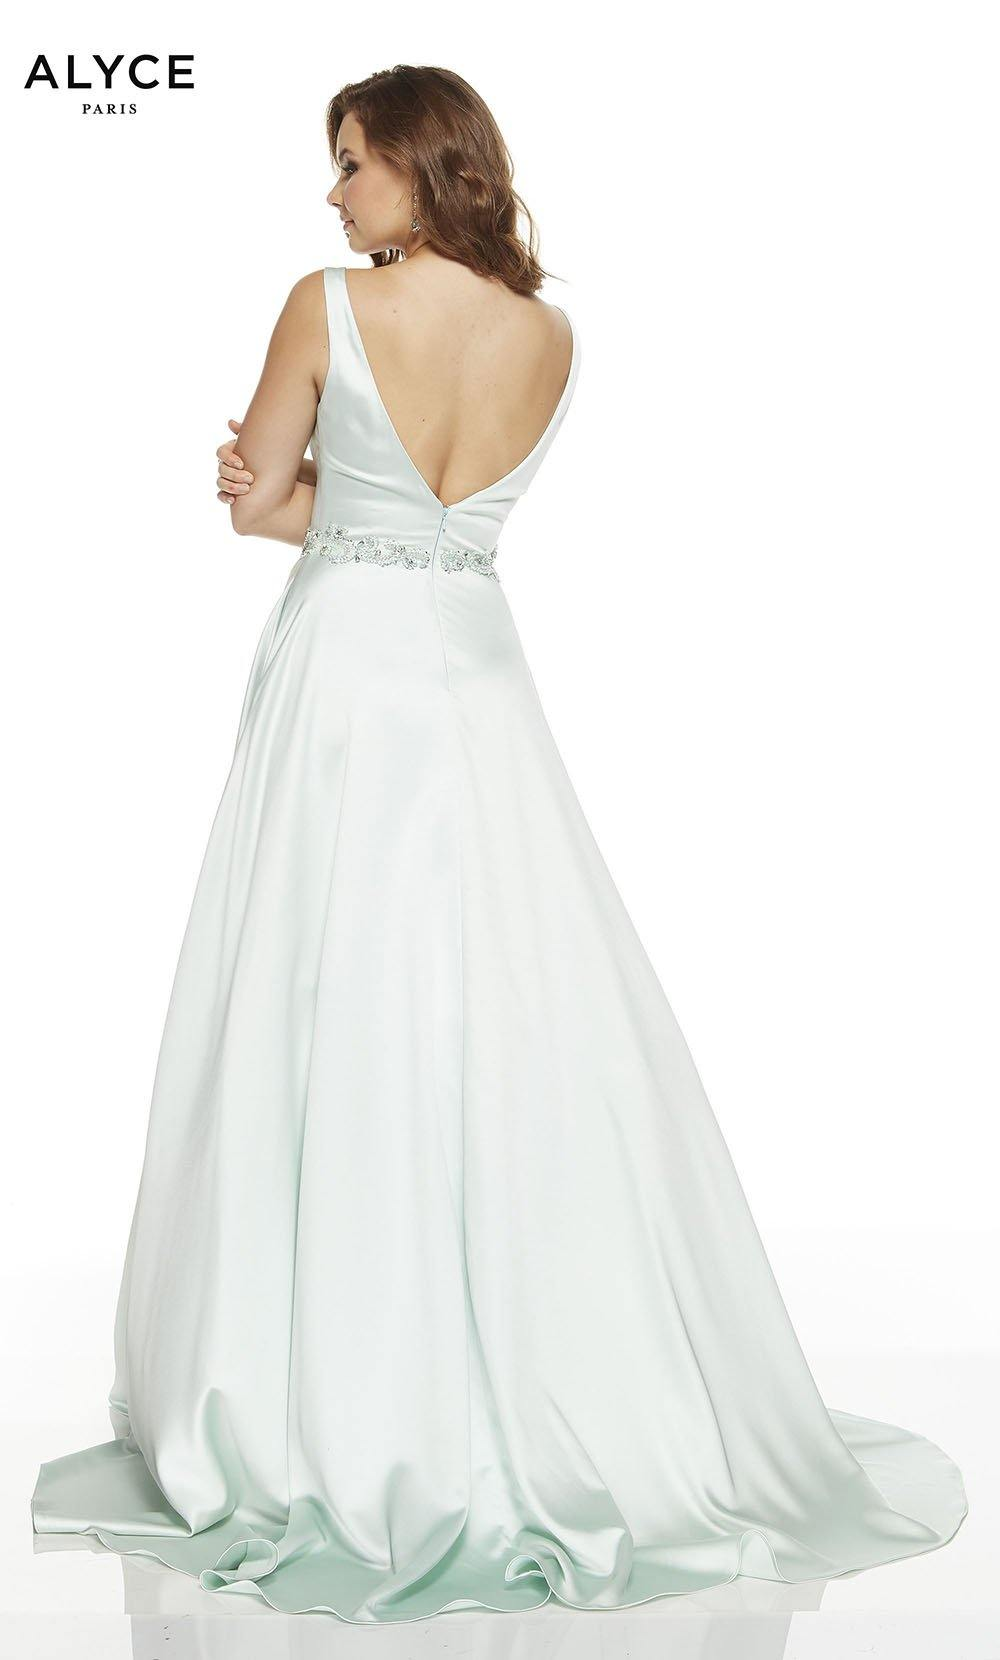 Sea Glass Green luminous satin A line prom dress with a V back, beaded natural waistline, and train